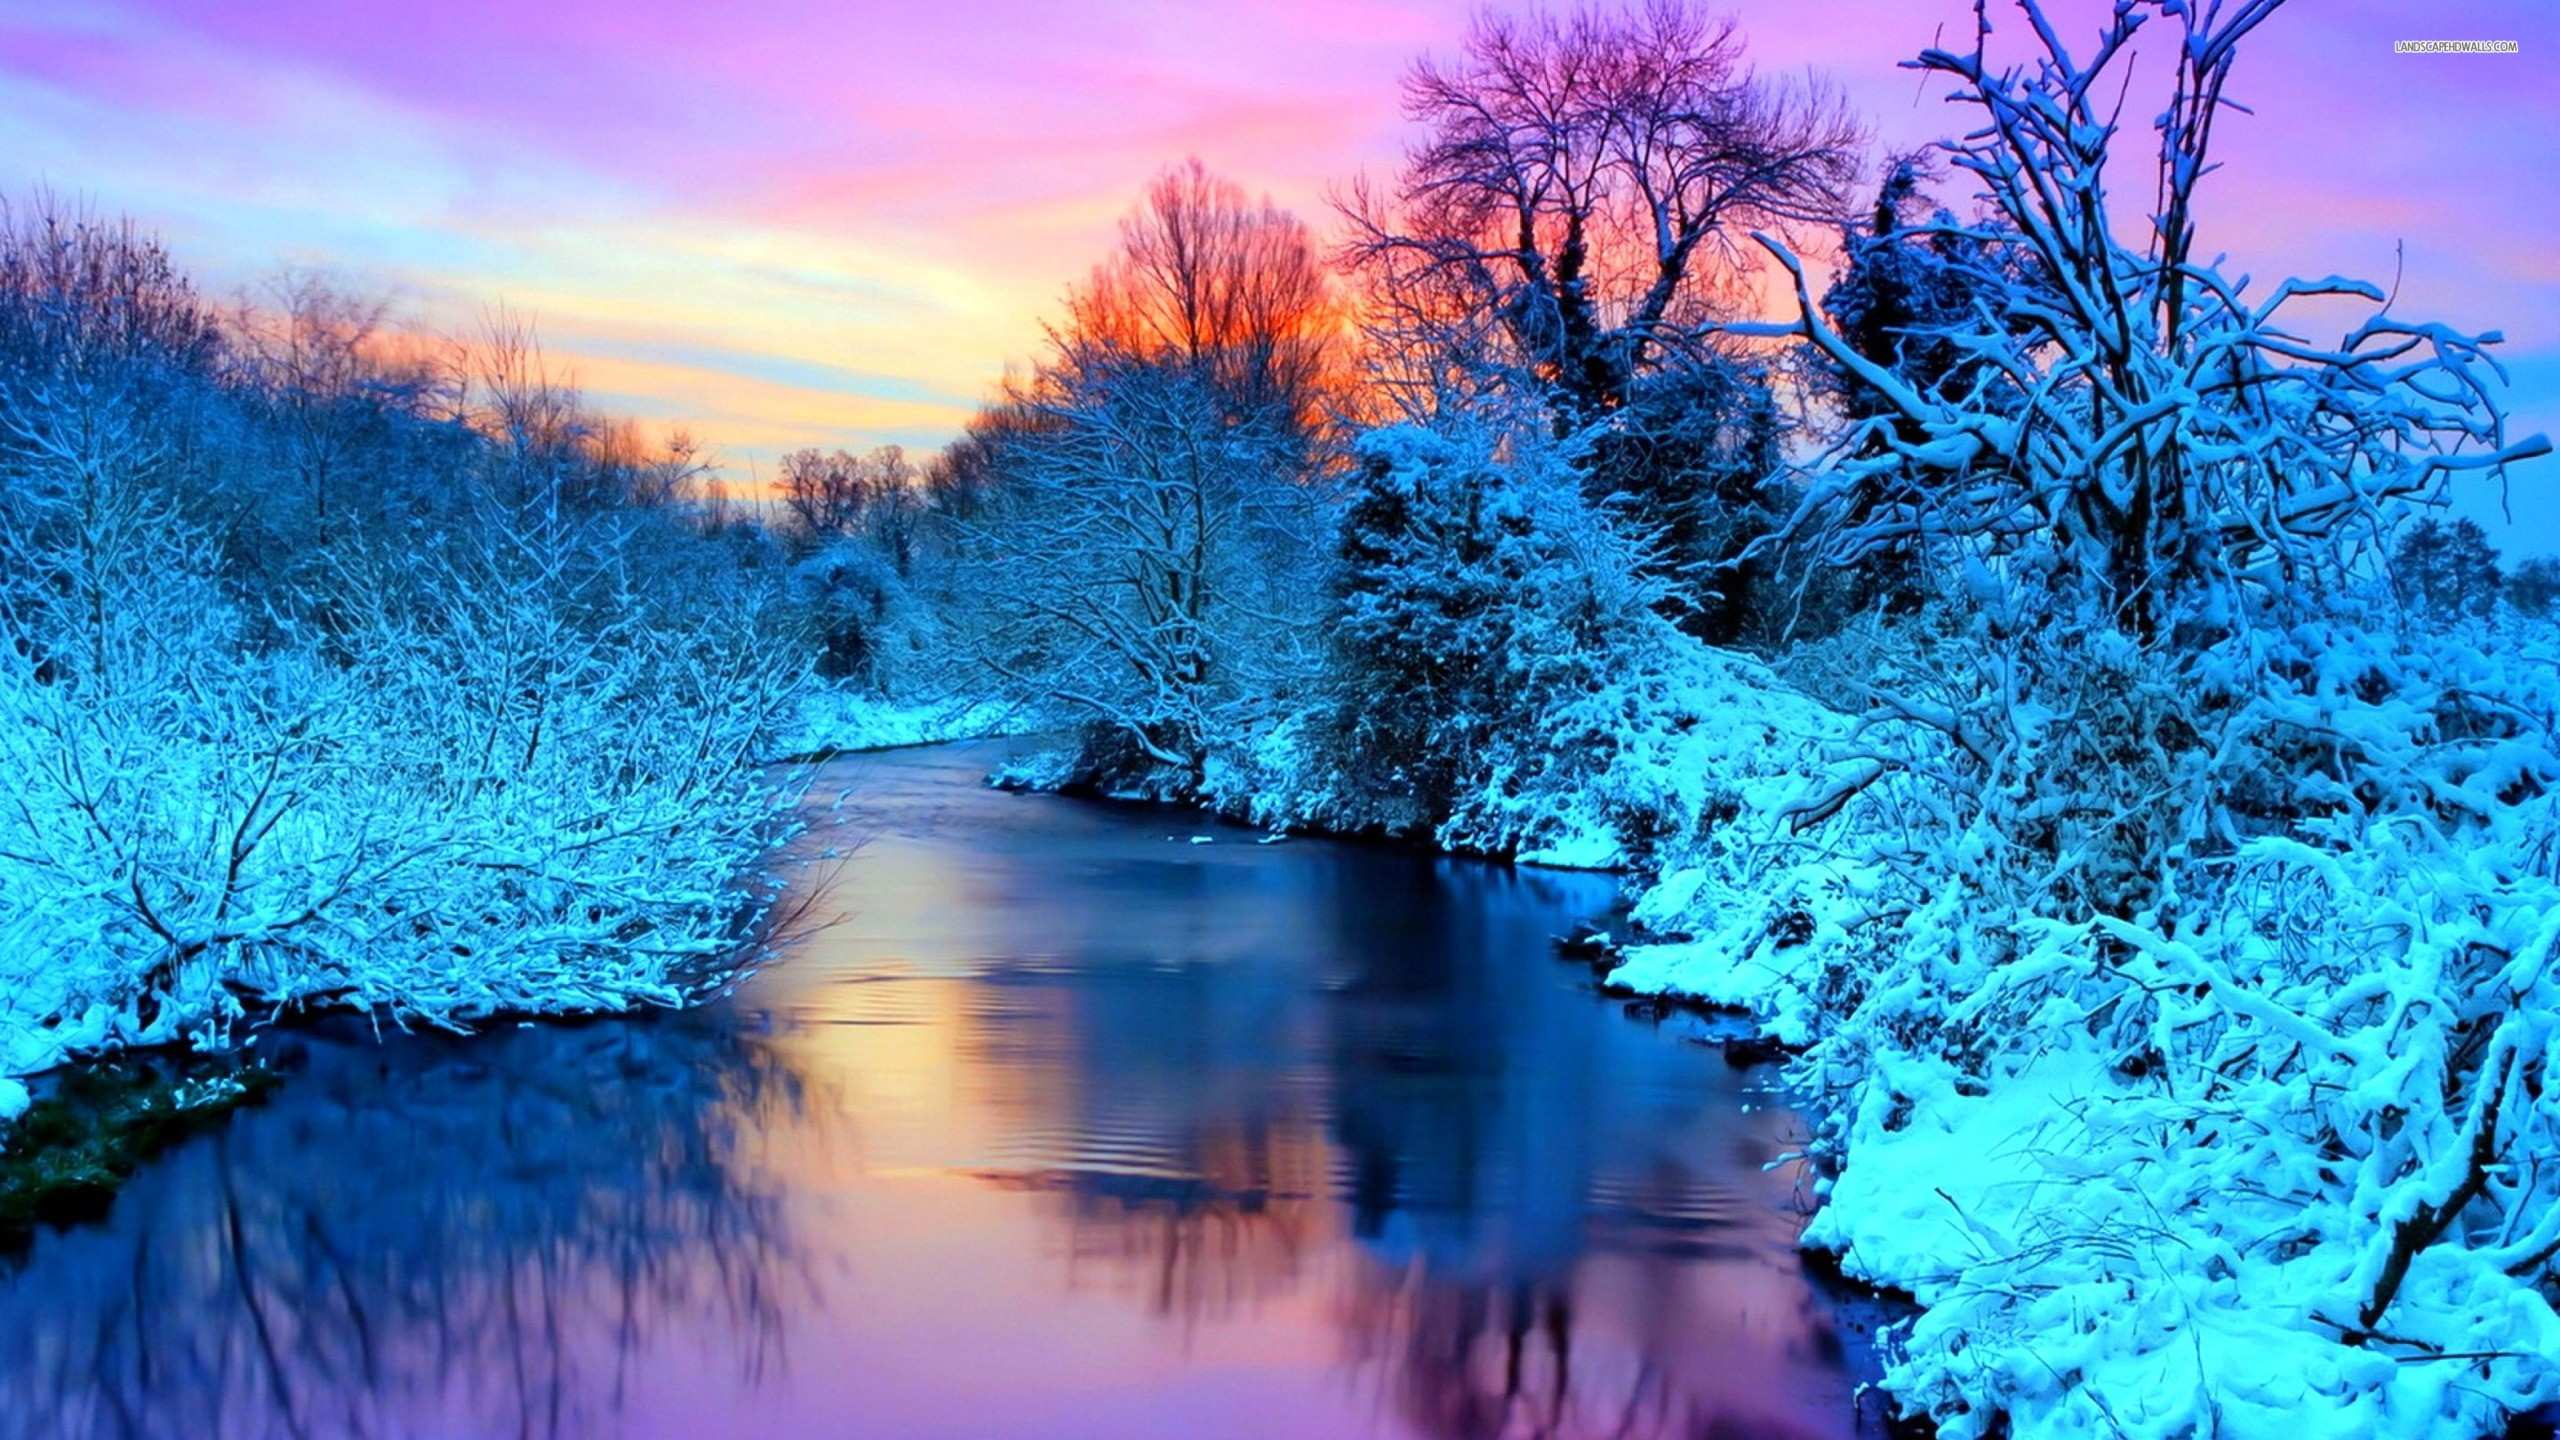 Winter background images download free awesome high - Free winter wallpaper for phone ...